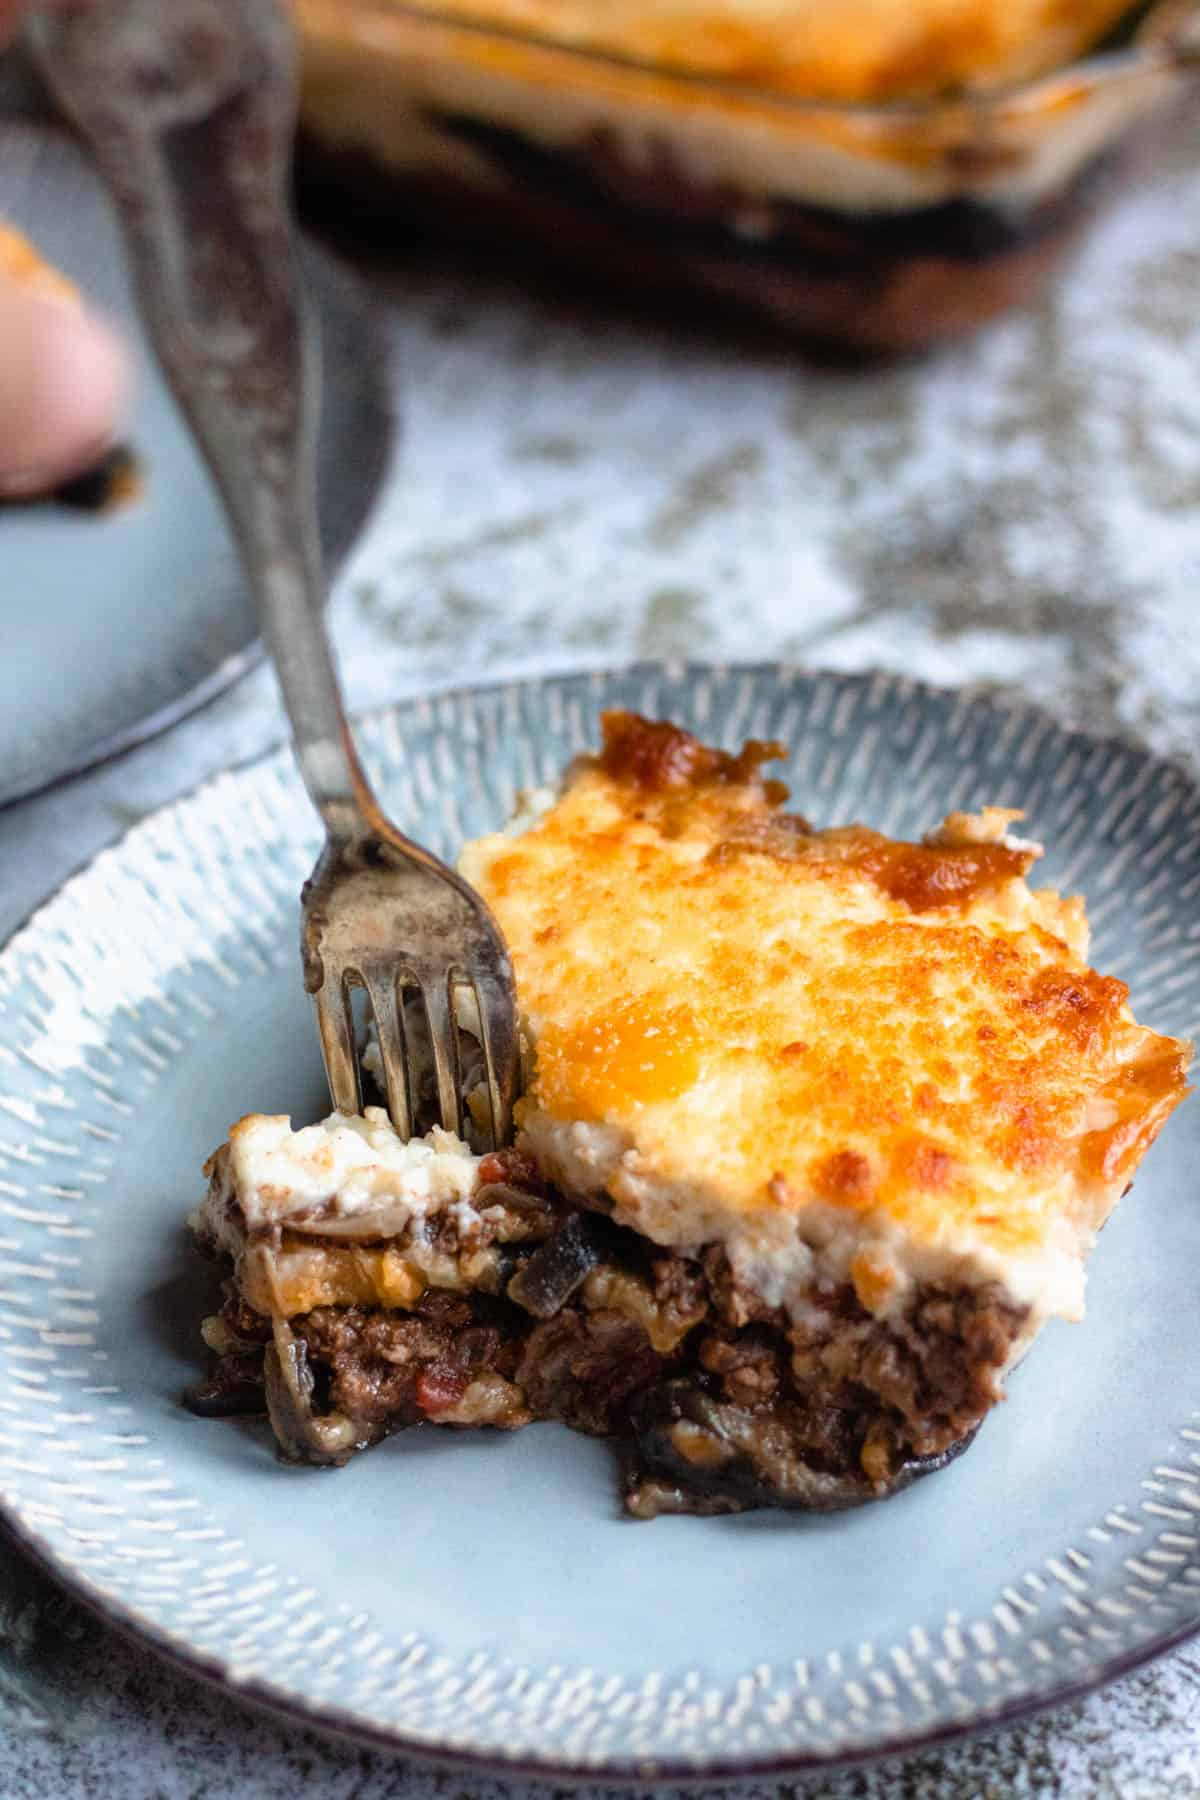 Fork taking a bite of moussaka off of a plate